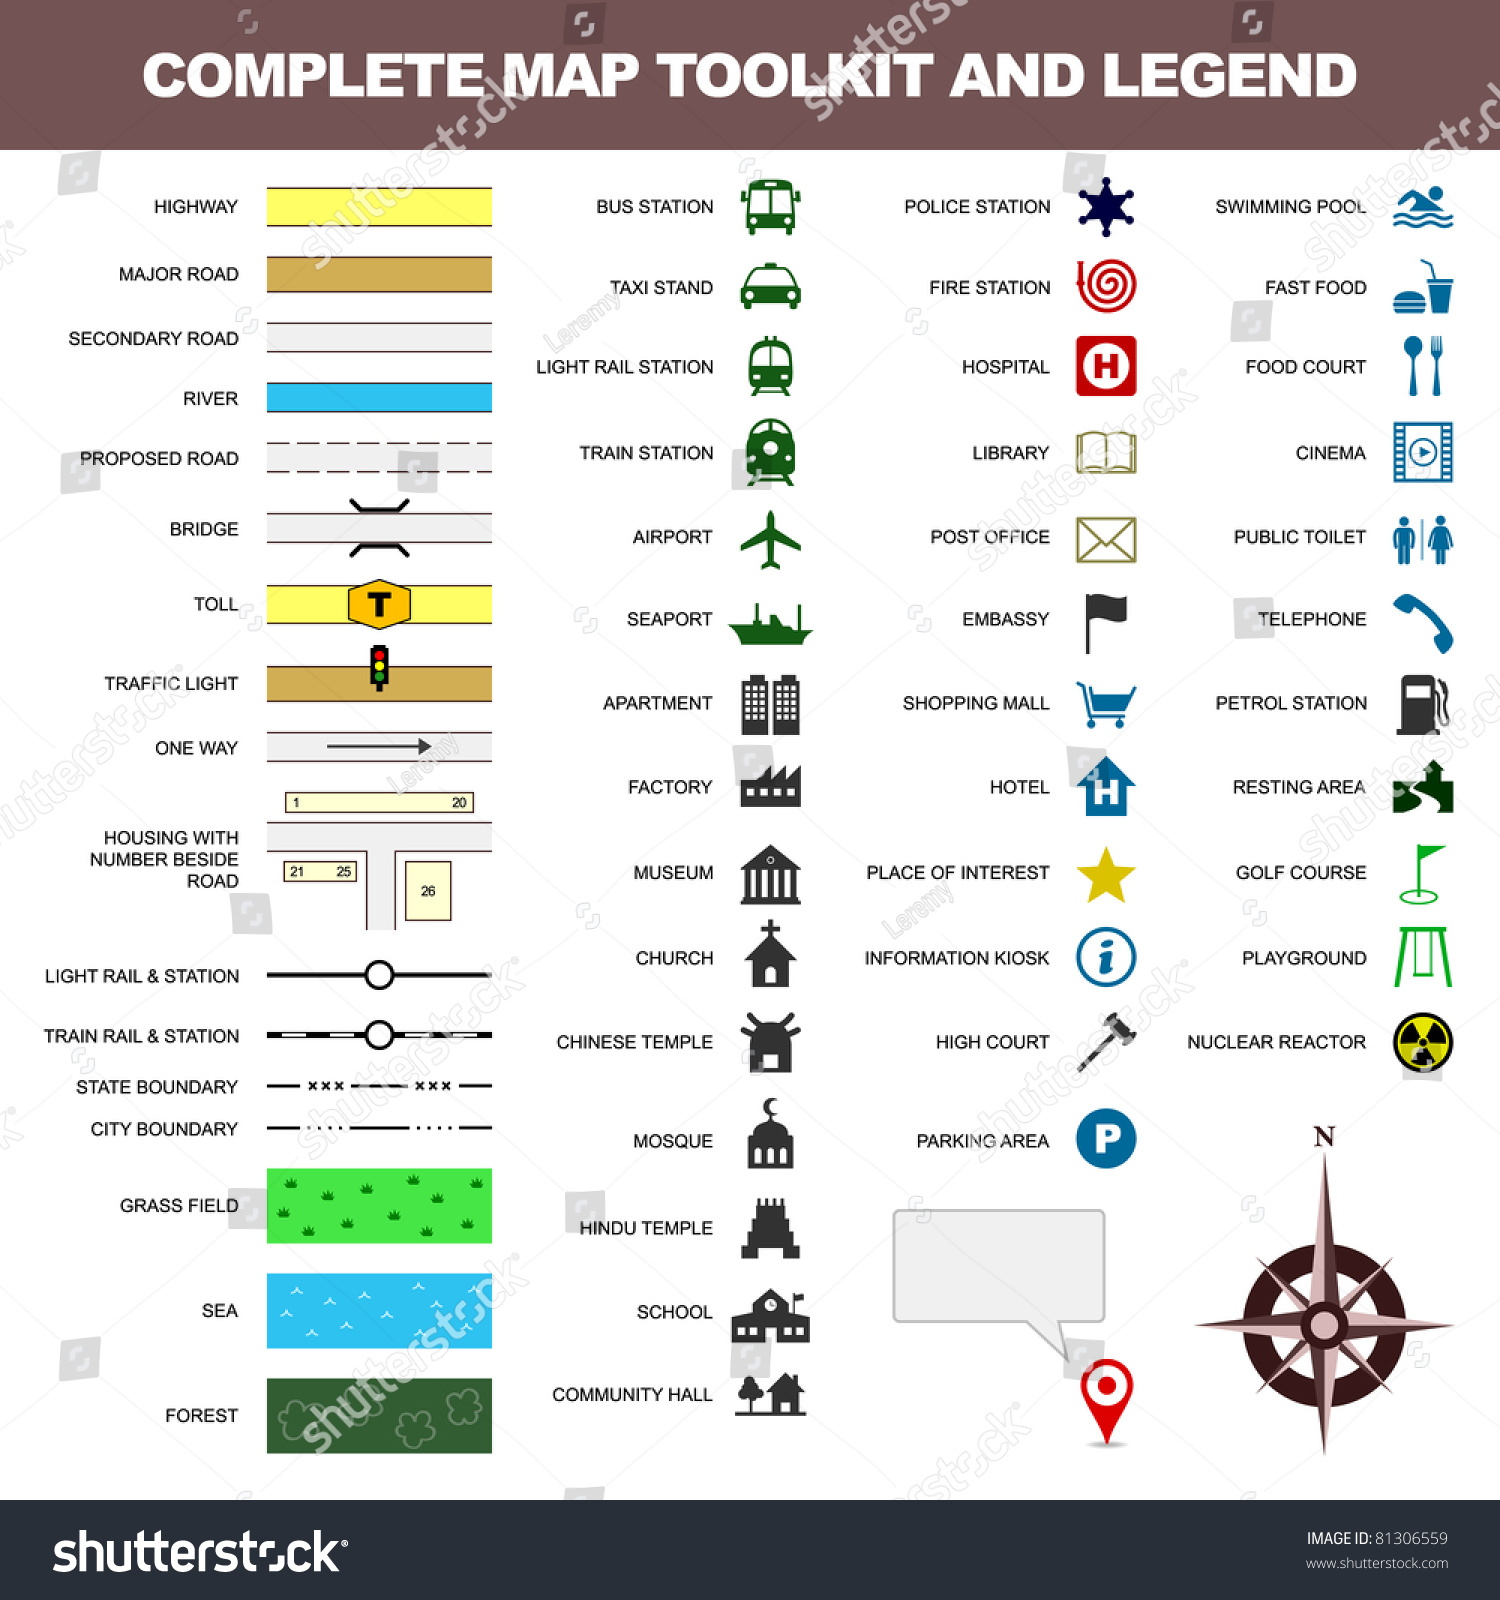 Map Icon Legend Symbol Sign Toolkit Stock Vector HD (Royalty Free